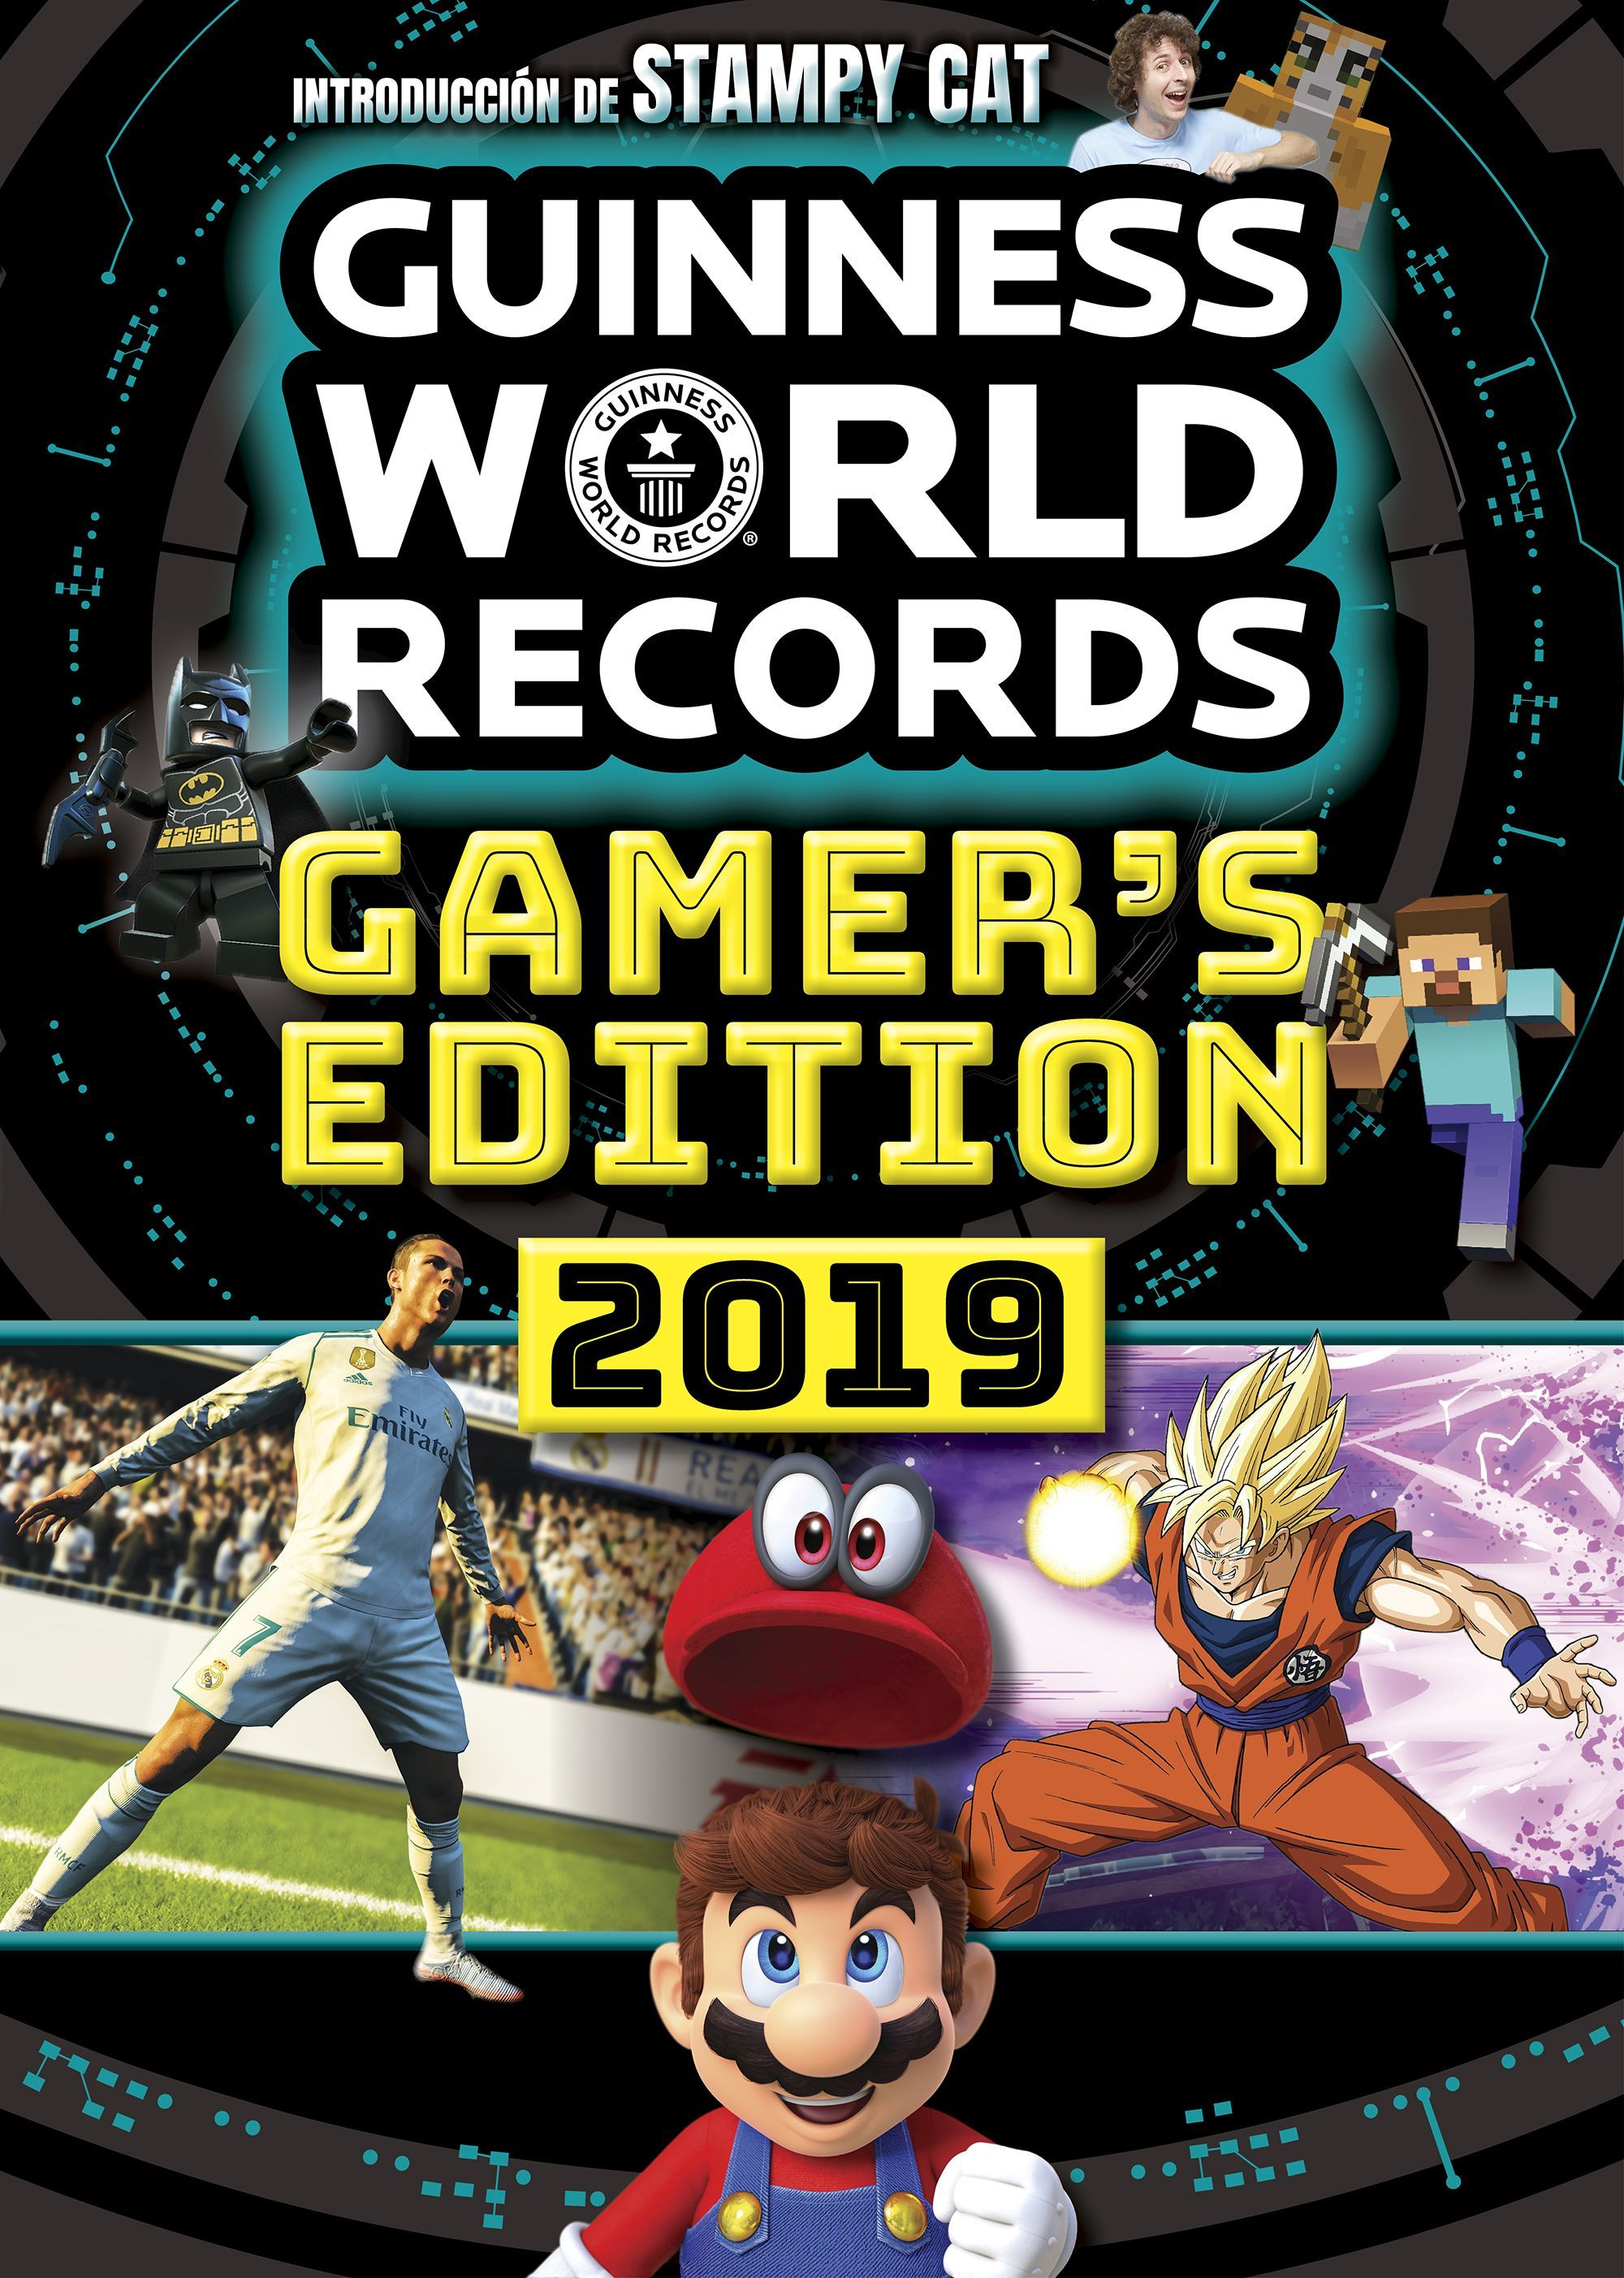 GUINNESS WORLD RECORDS 2019. GAMER'S EDITION